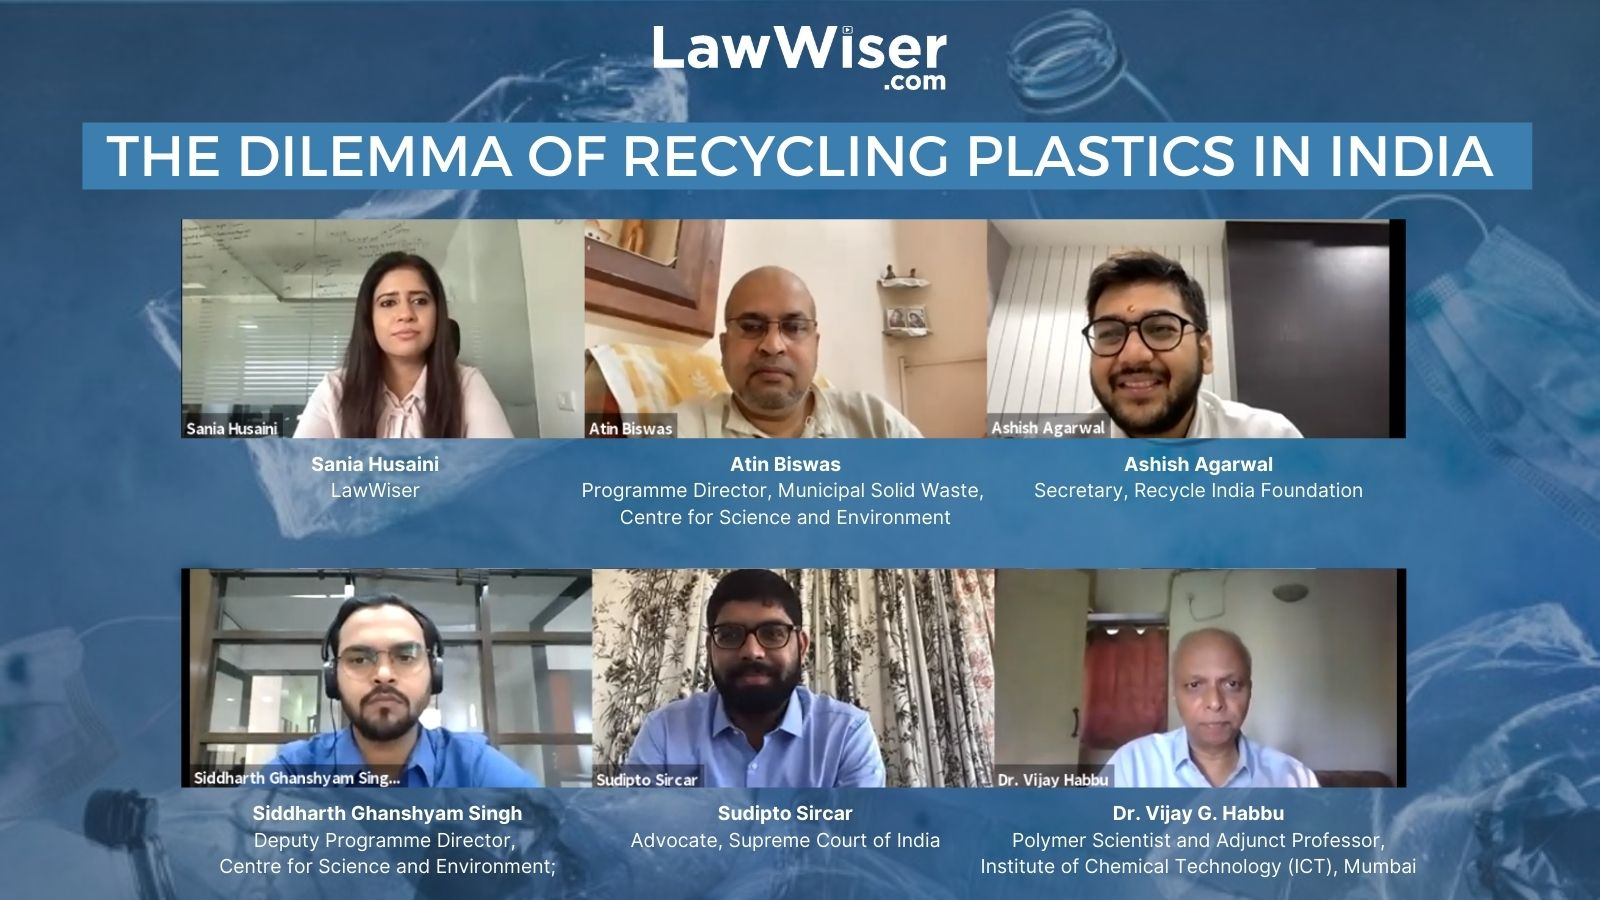 Virtual Open Forum | The Dilemma of Recycling Plastics in India | LawWiser